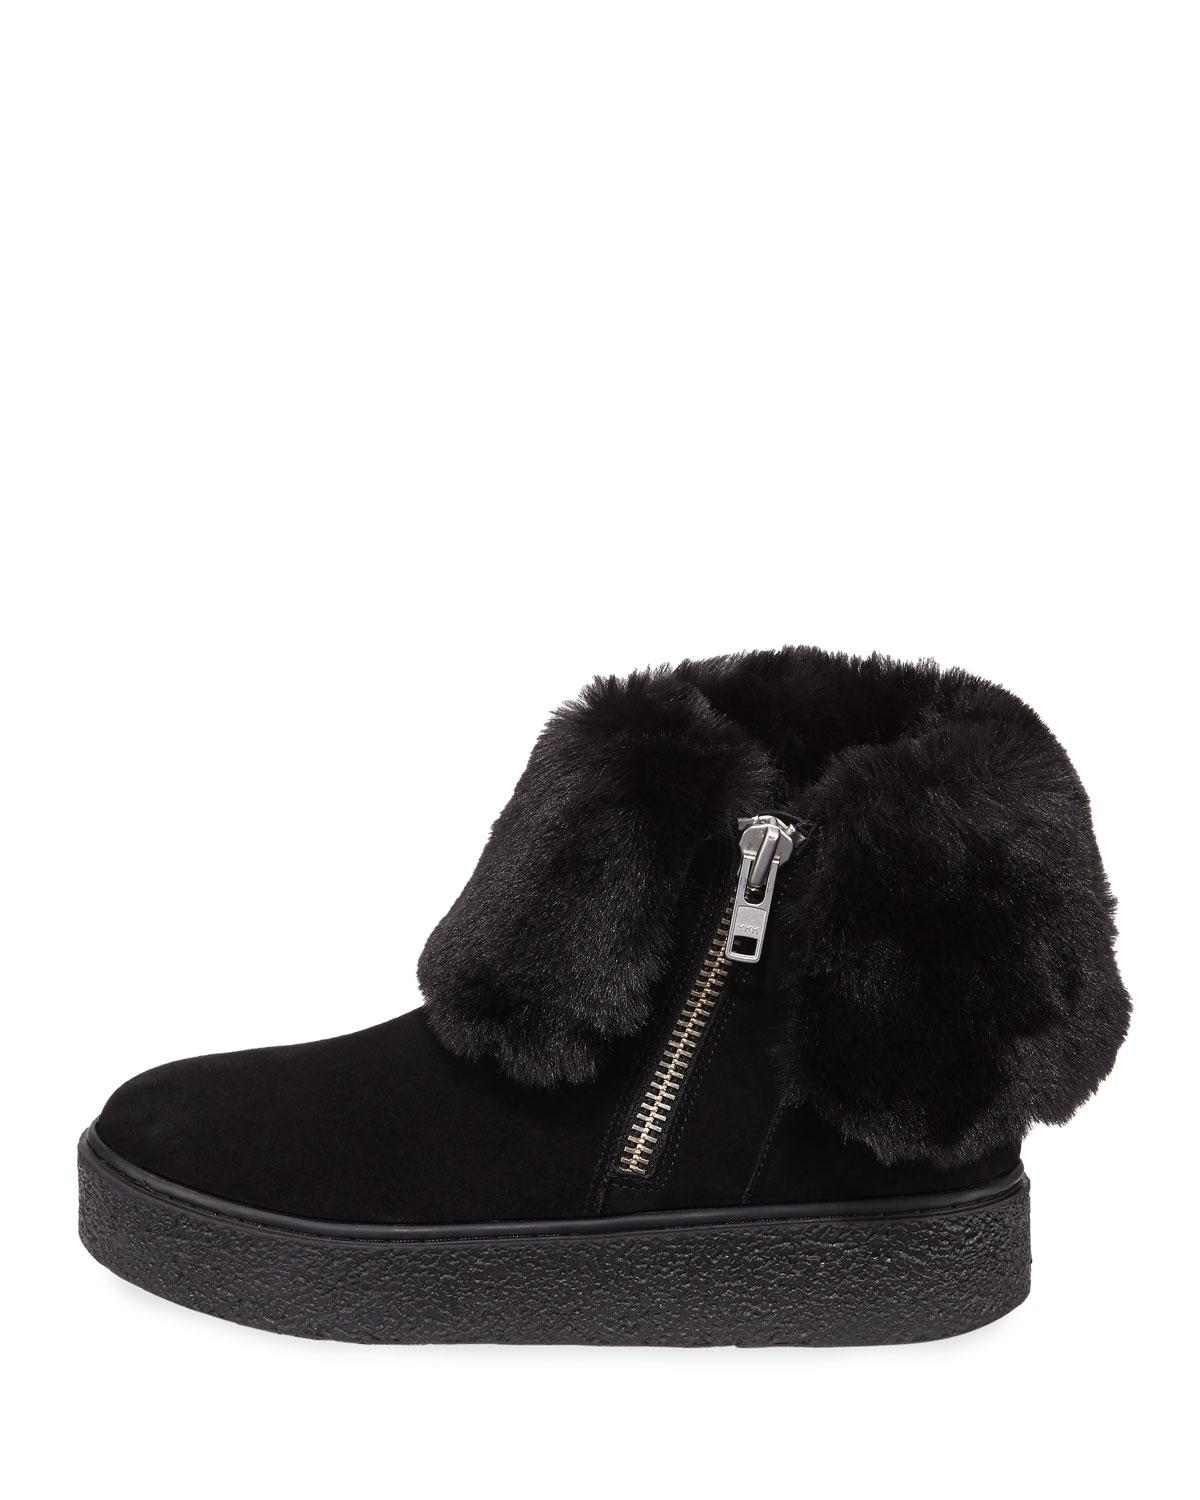 e0cc7c3d7398 Lyst - J Slides Brynn Sneakers Bootie With Faux-fur Collar in Black